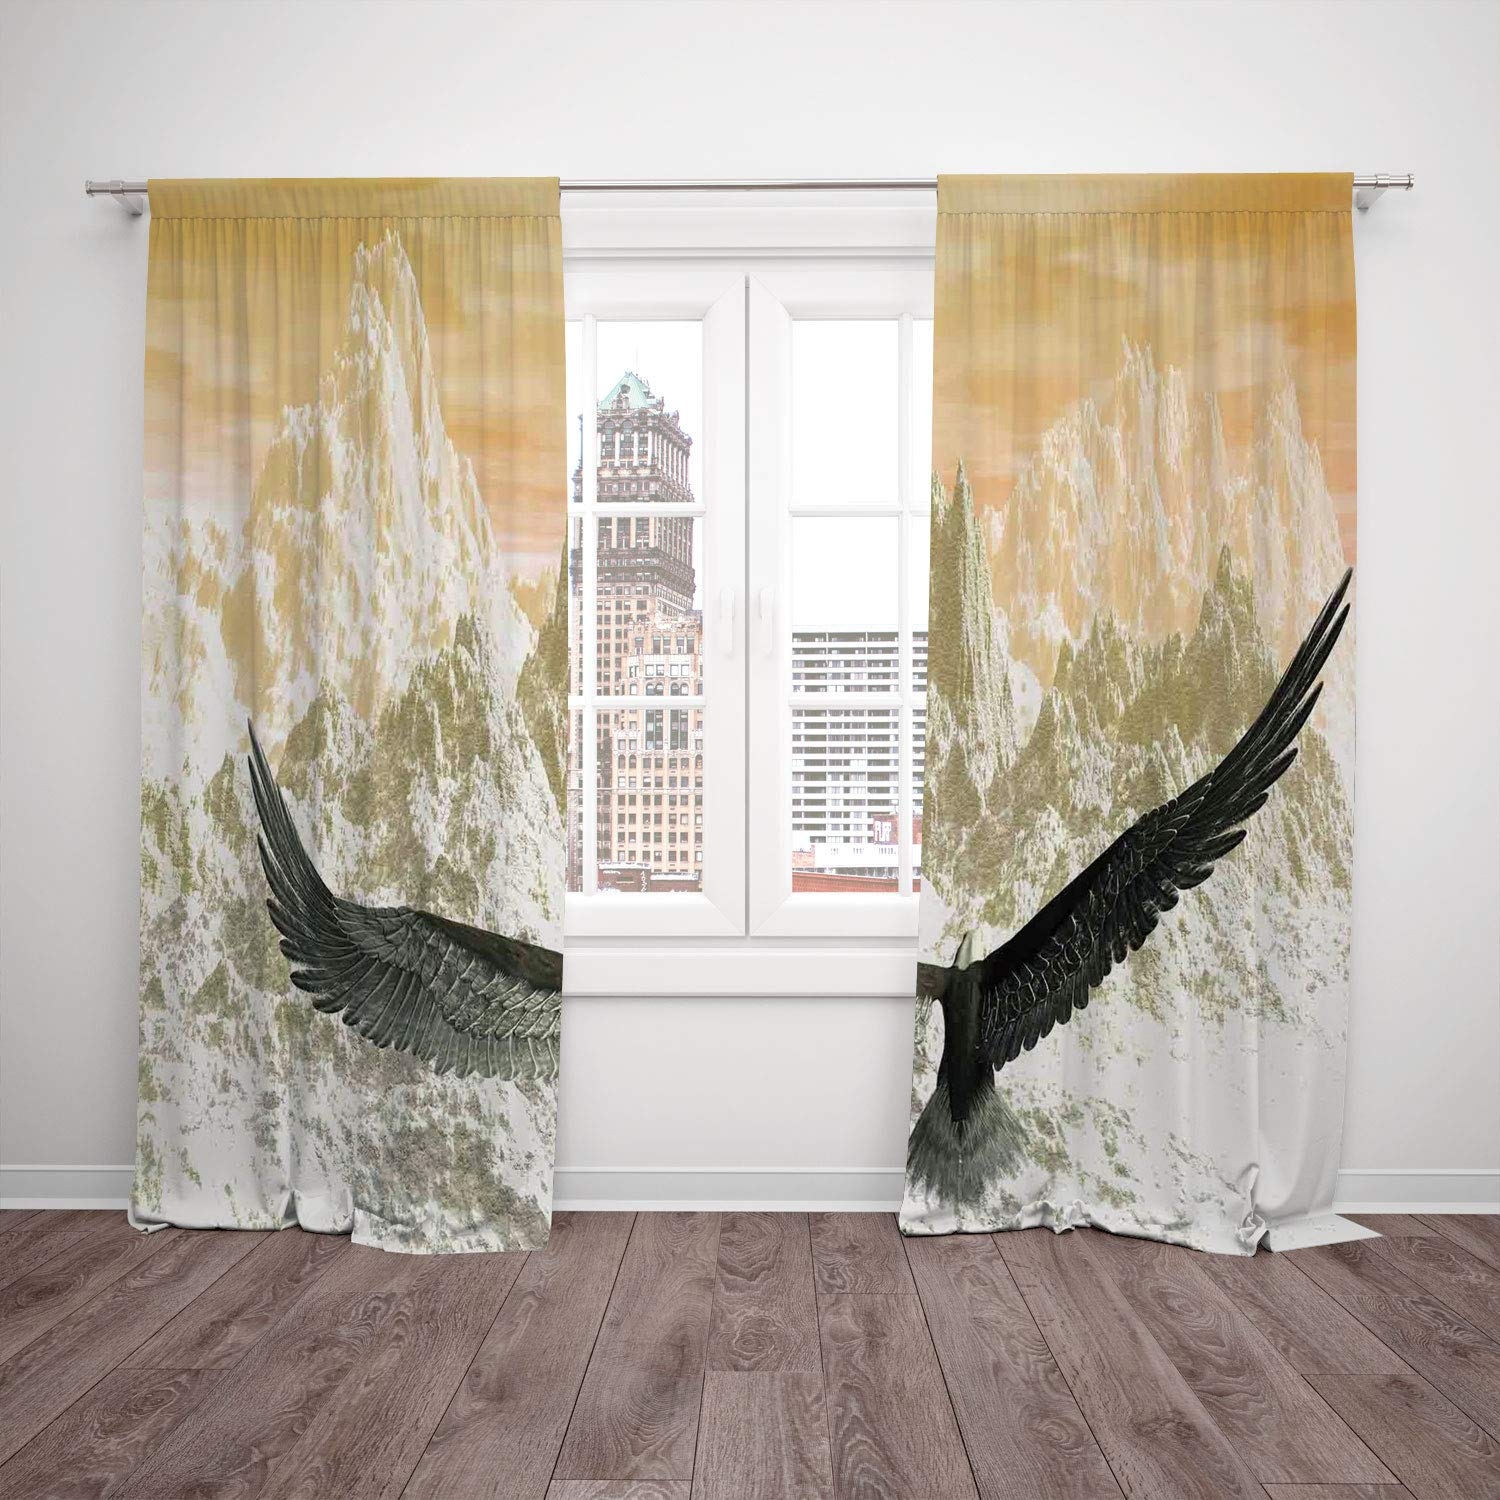 Thermal Insulated Blackout Window Curtain,Birds,Eagle Flying Towards the Mountains in the Sunset Clouds Wild Nature Landscape Print,Orange Olive,Living Room Bedroom Kitchen Cafe Window Drapes 2 Panel